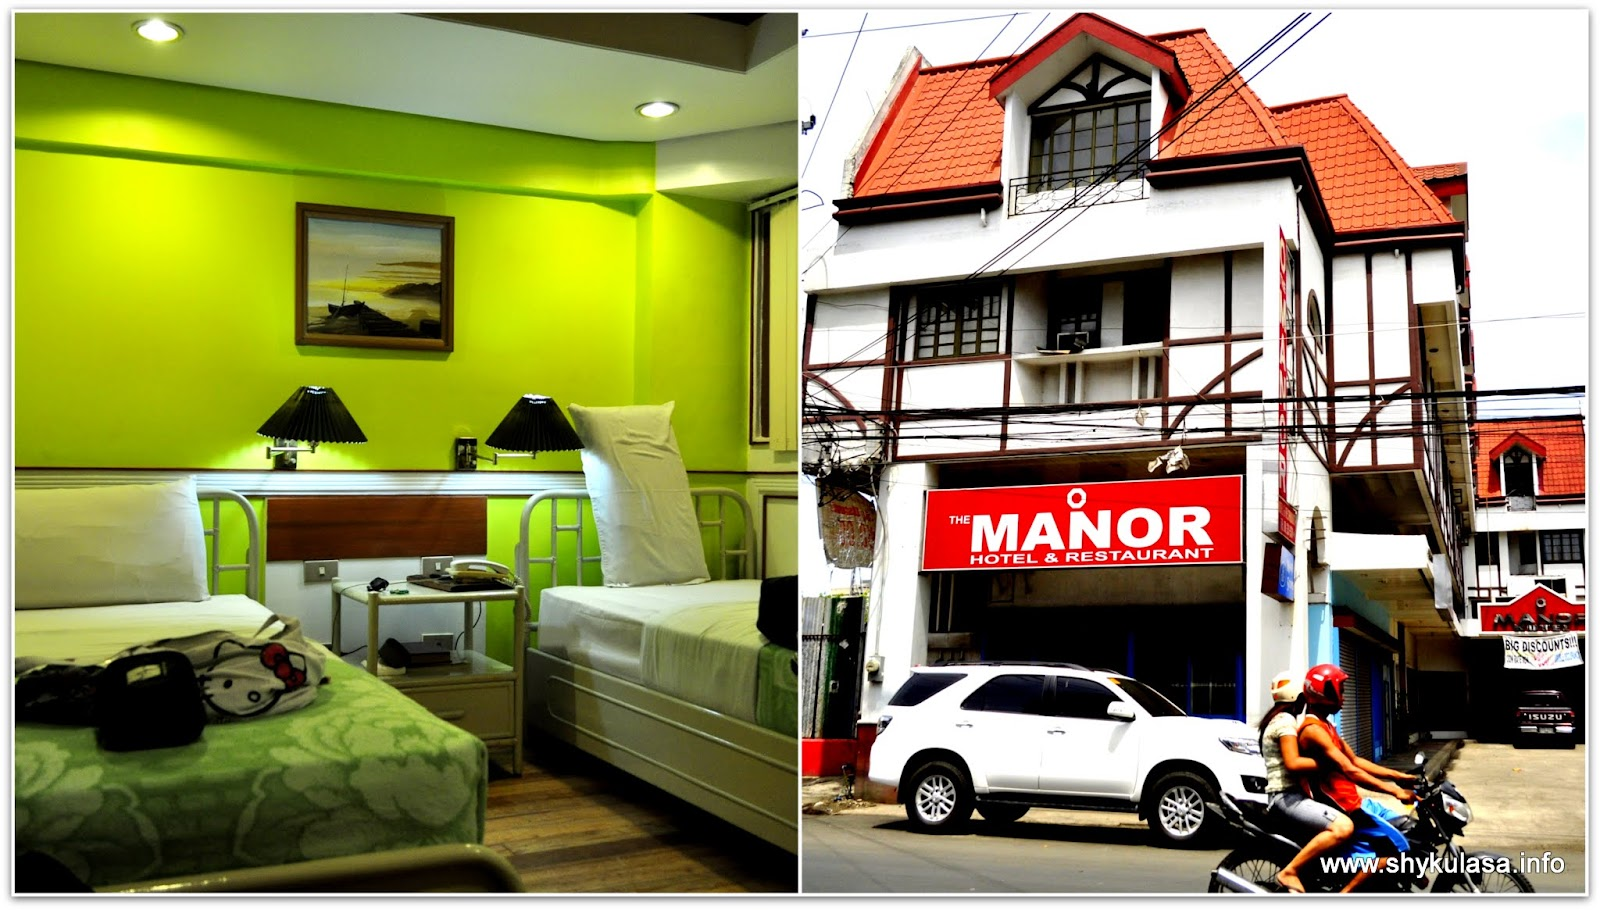 The Manor Hotel and Restaurant, Davao City